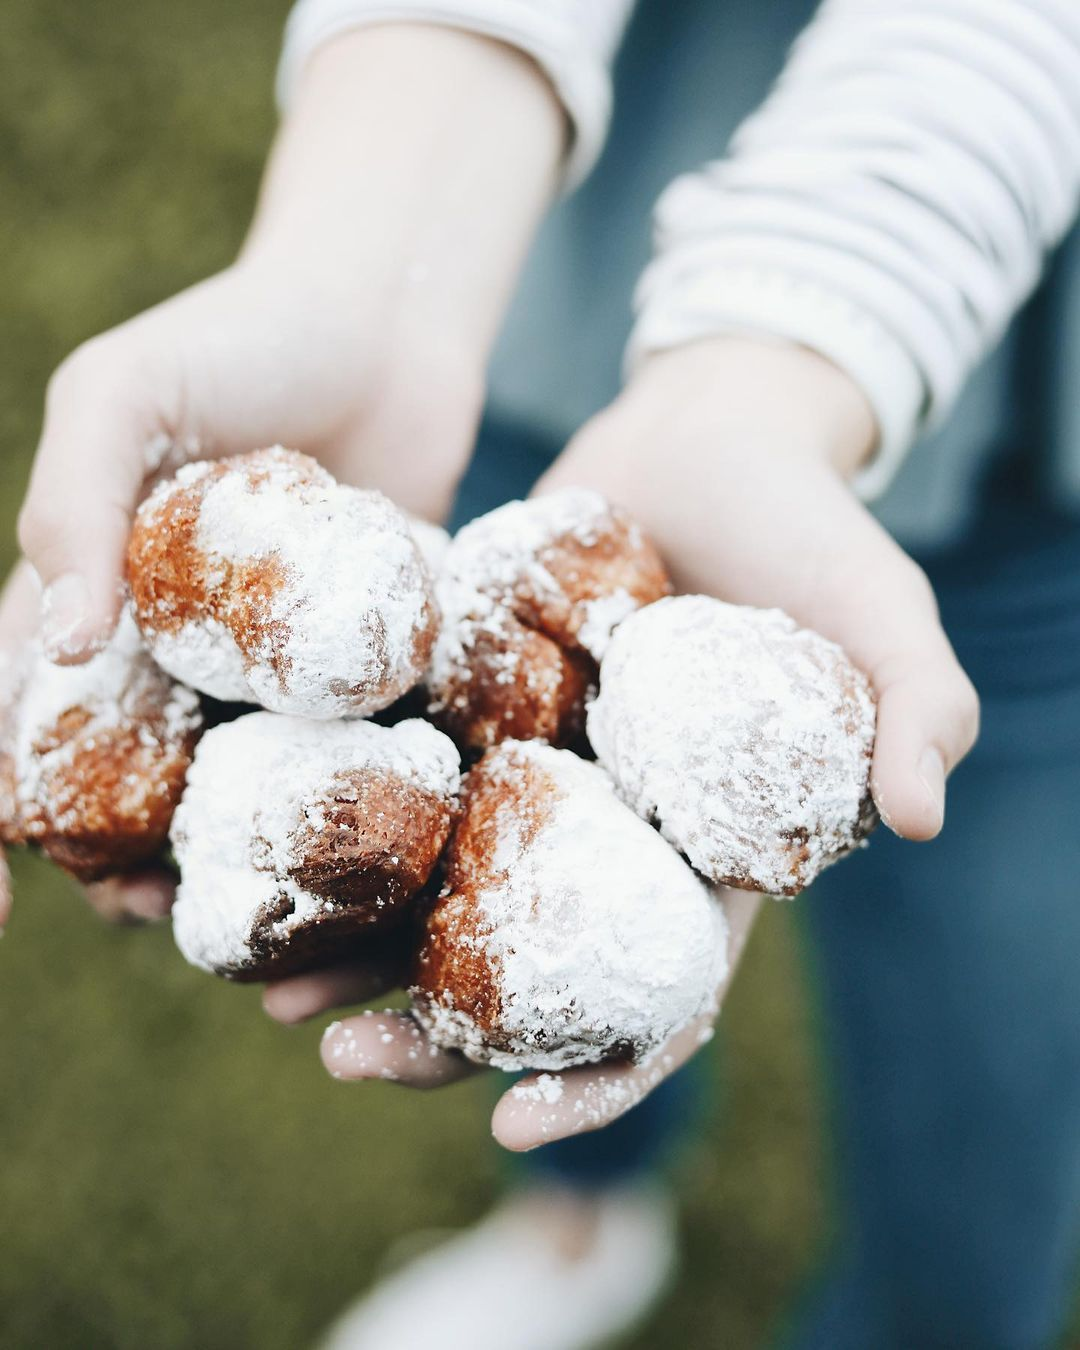 Hands Full of Donut Holes